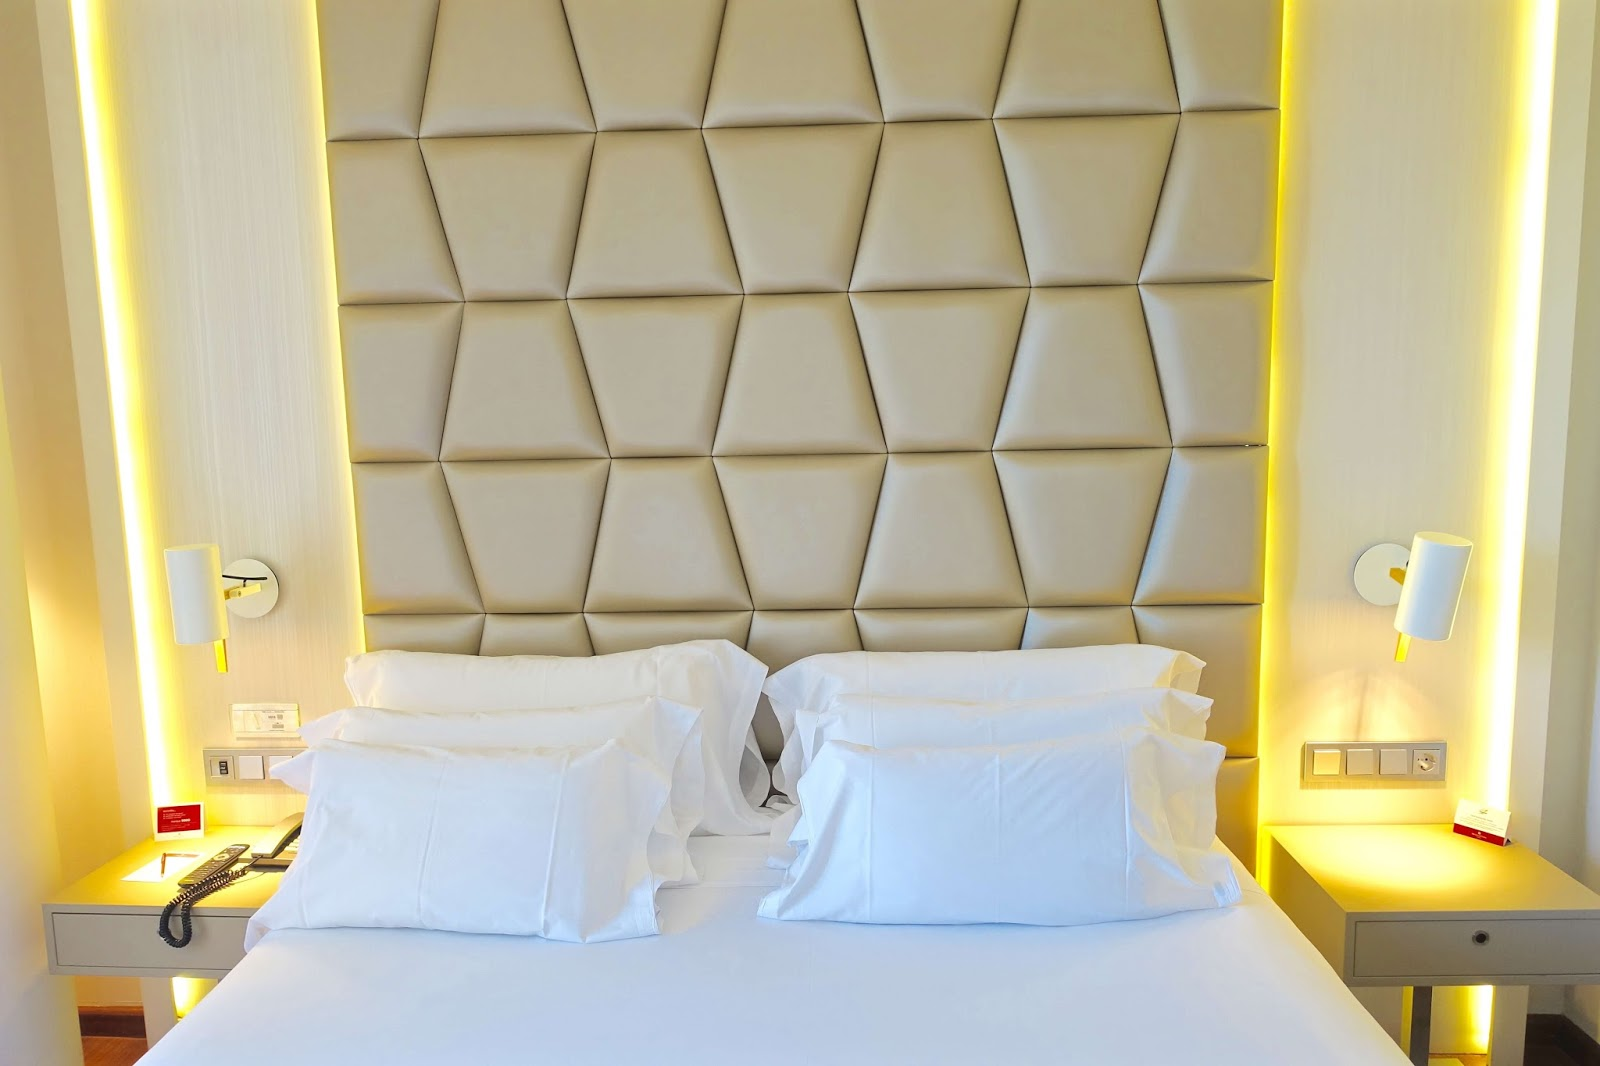 good hotel recommendations in Barcelona